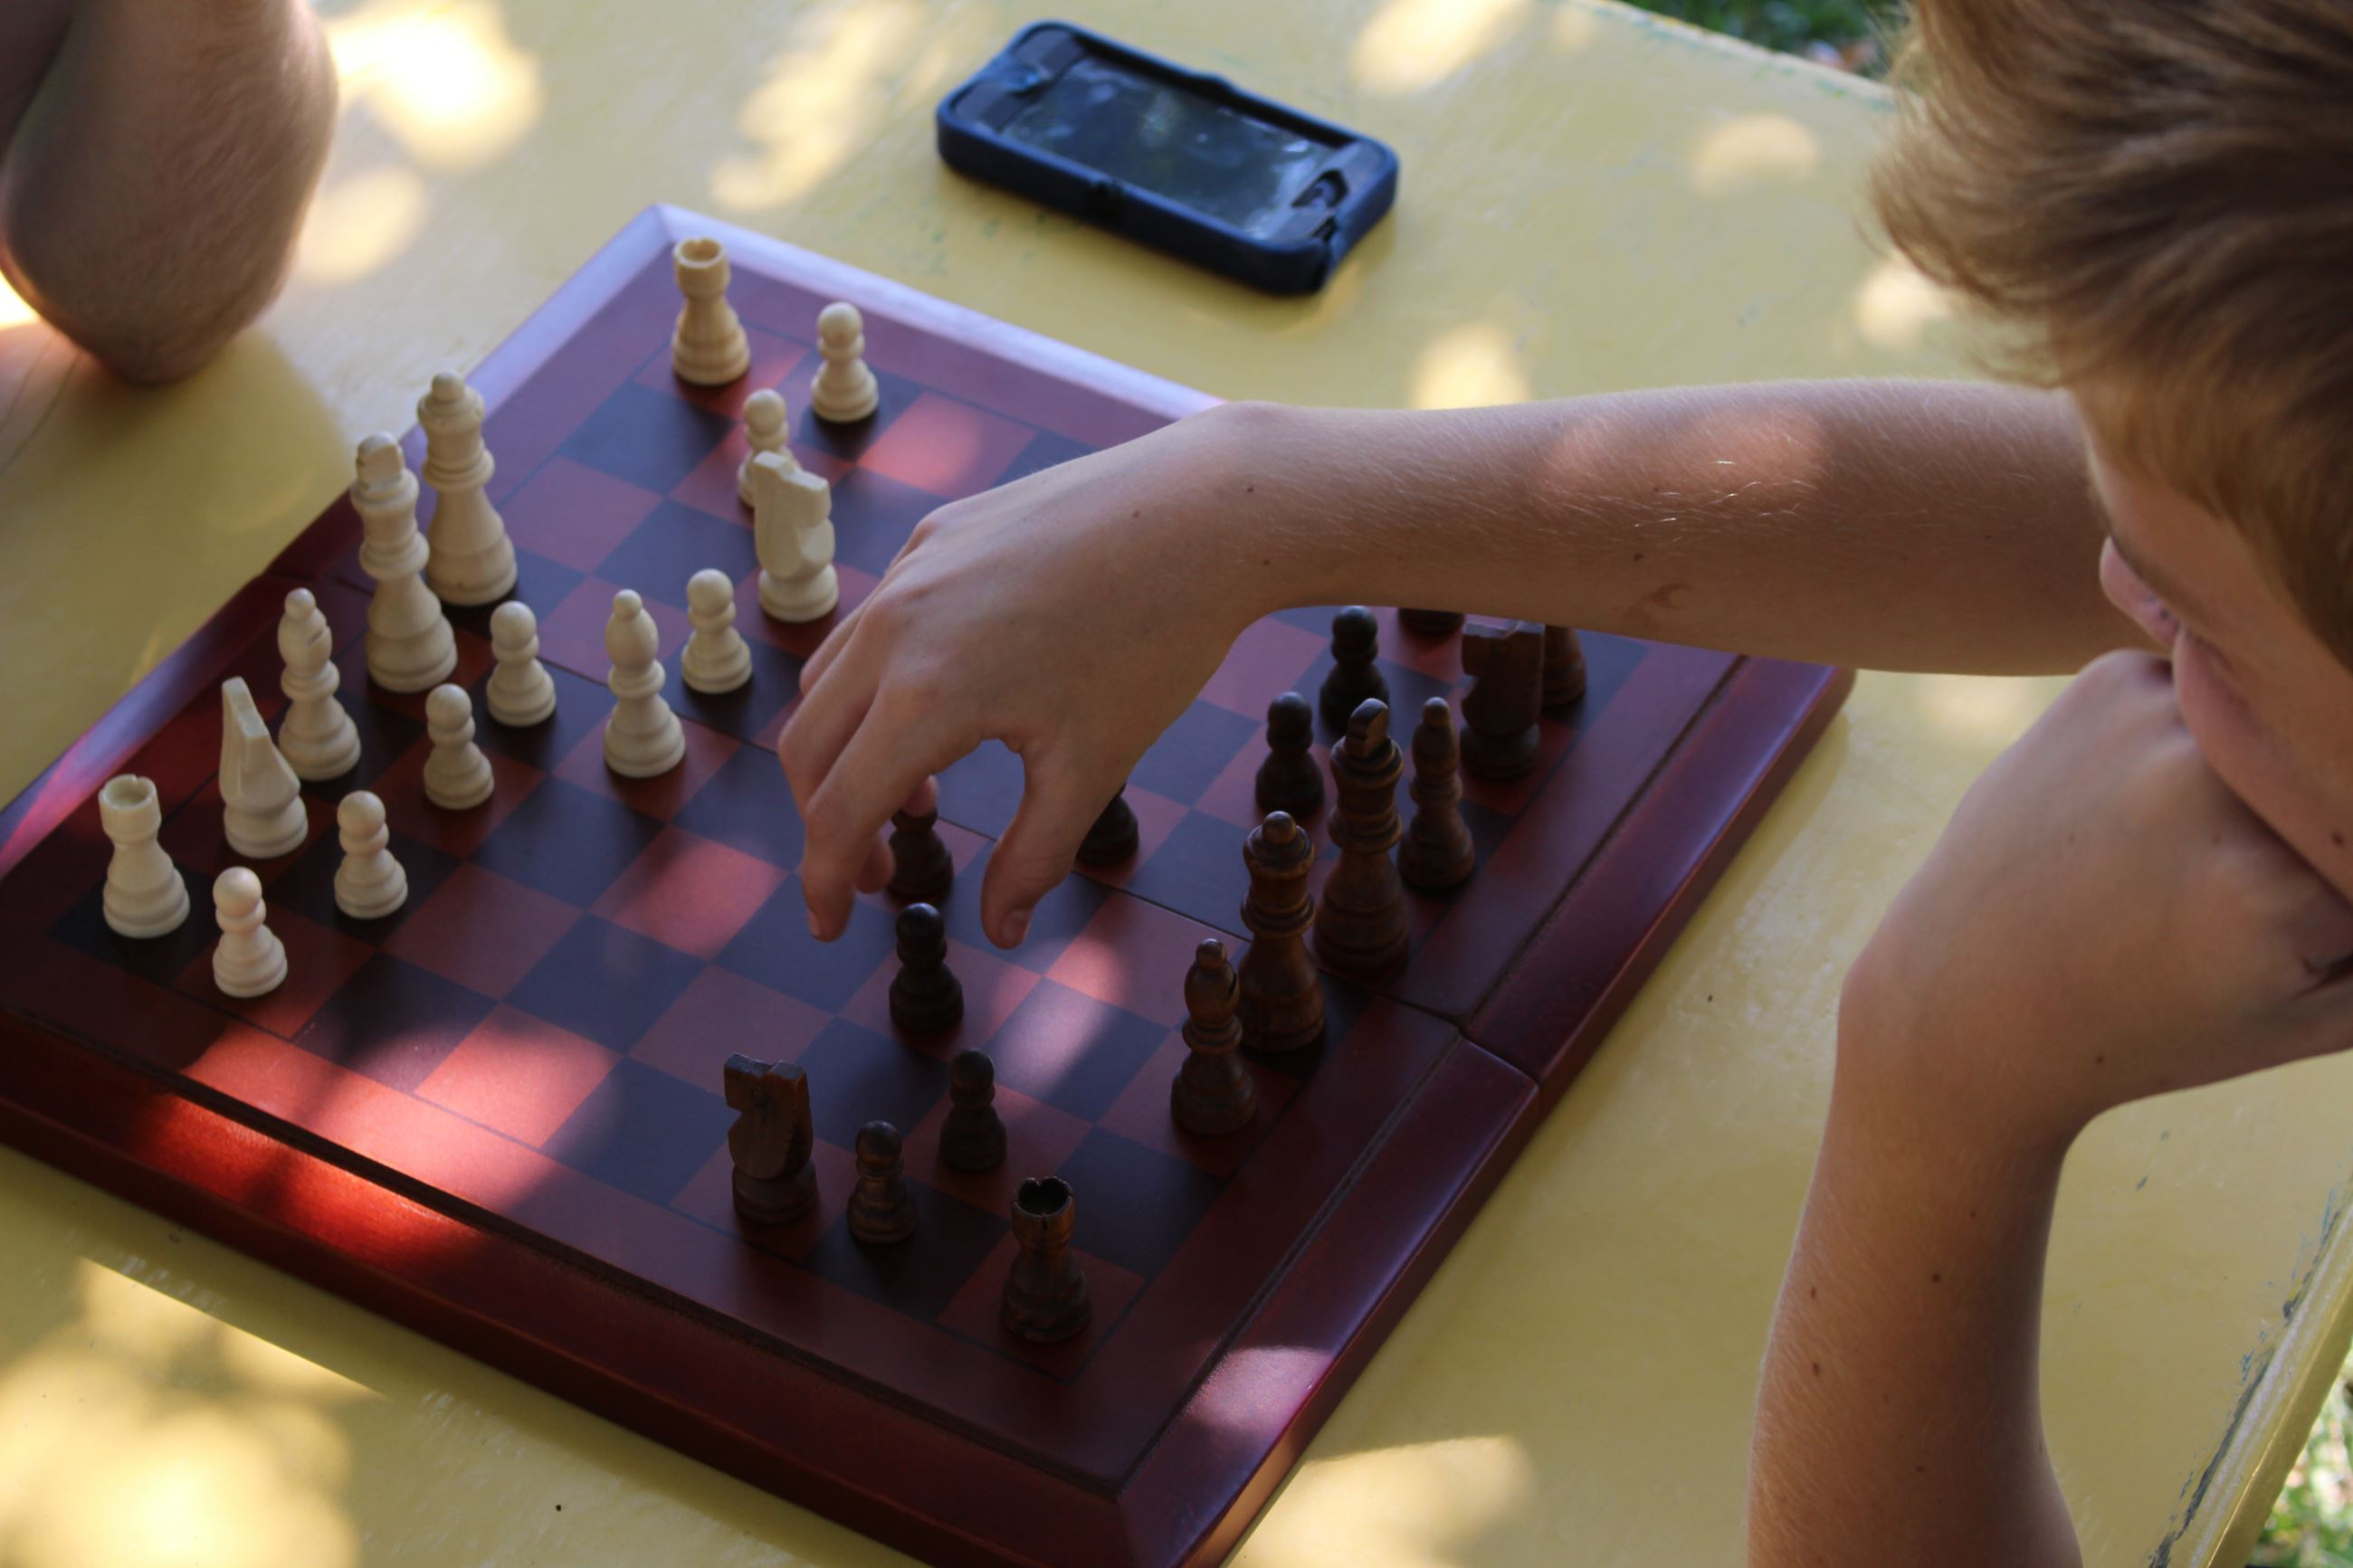 Image of hand hovering over a chess board pondering the next move